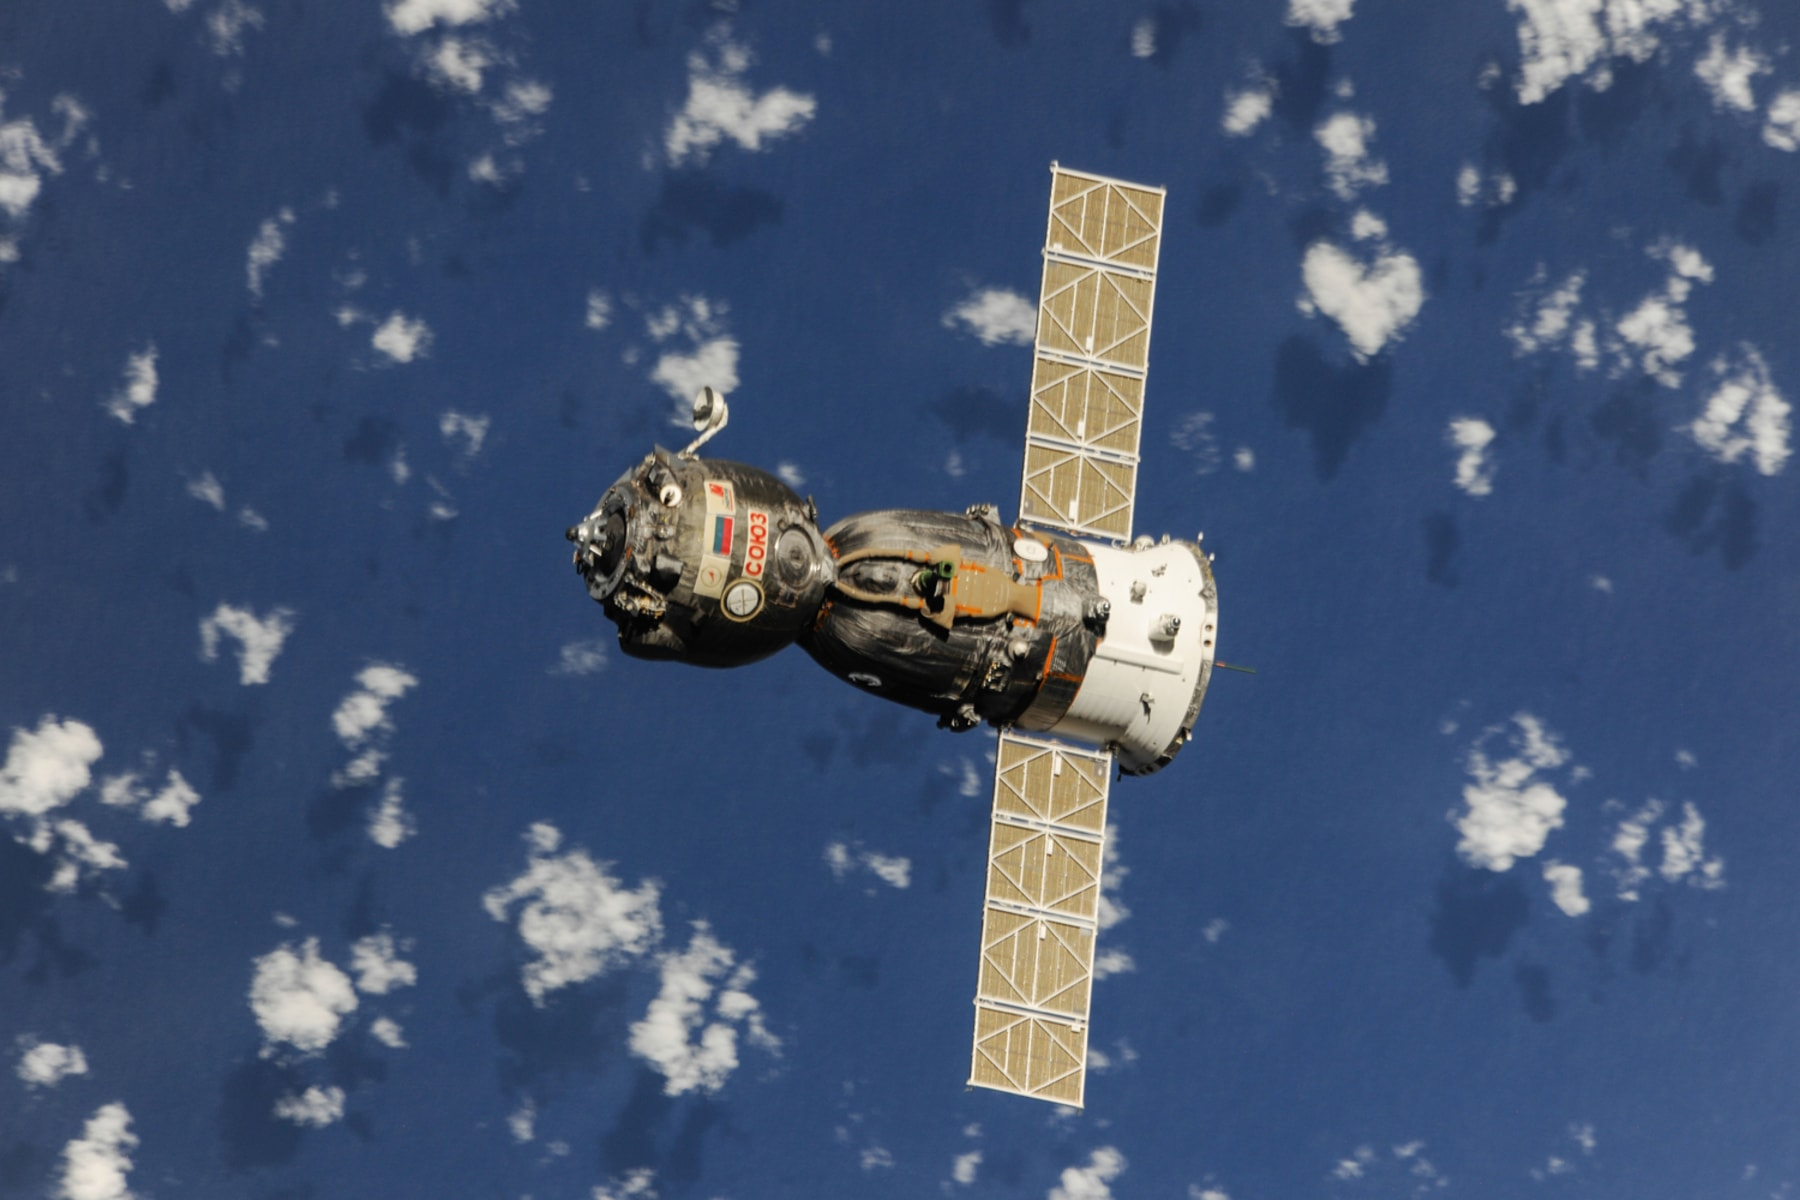 Image: The Soyuz TMA-08M spacecraft departs from the International Space Station's Poisk Mini-Research Module 2 (MRM2) and heads toward a landing in a remote area near the town of Zhezkazgan, Kazakhstan, on Sept. 11, 2013 (Kazakhstan time). Russian cosmon